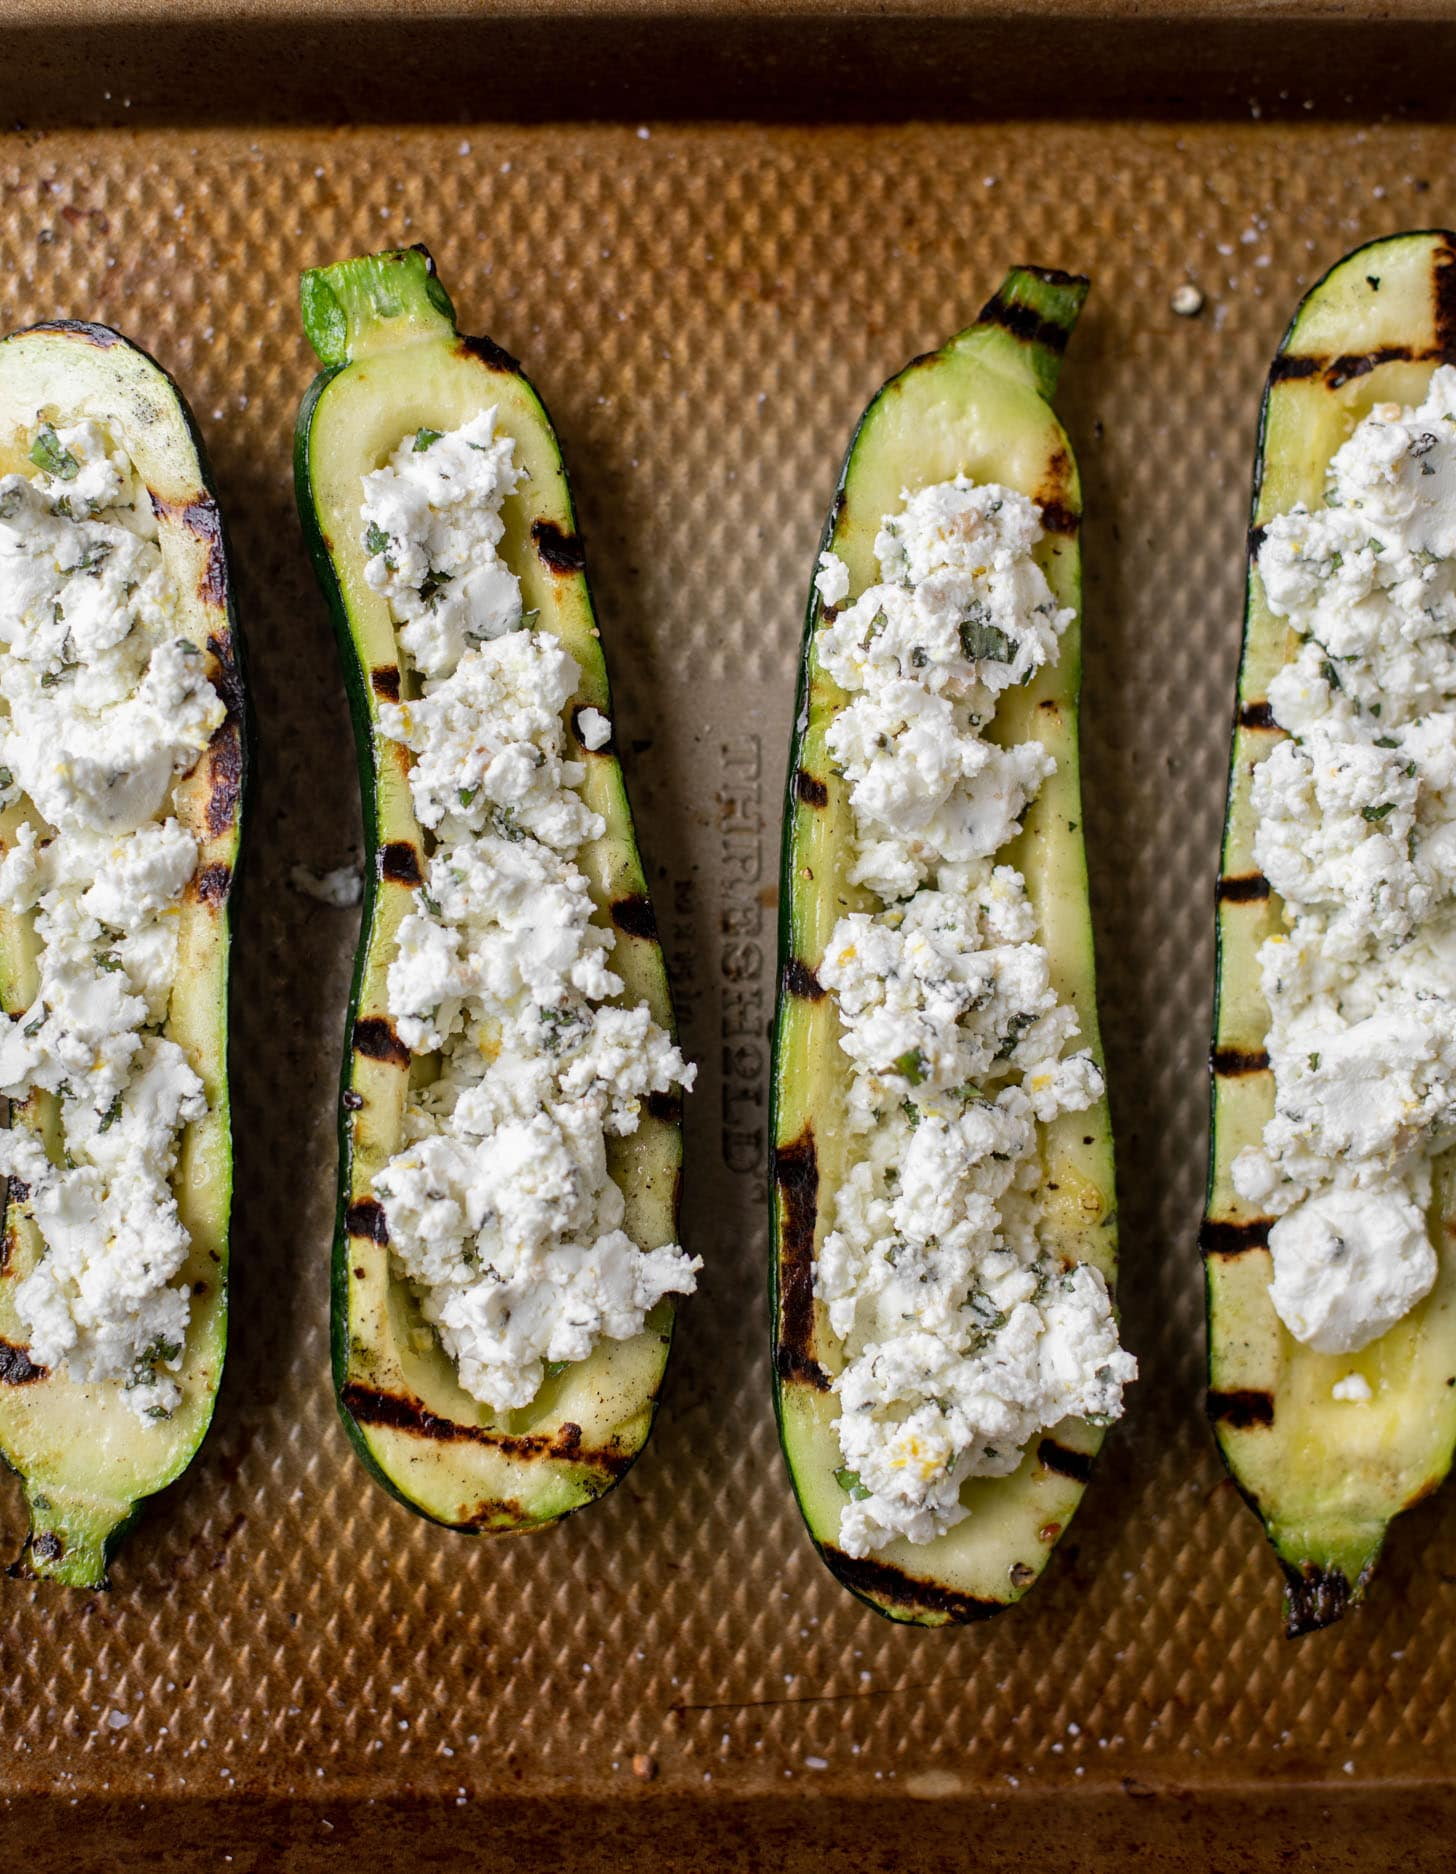 grilled goat cheese stuffed zucchini ready for the grill